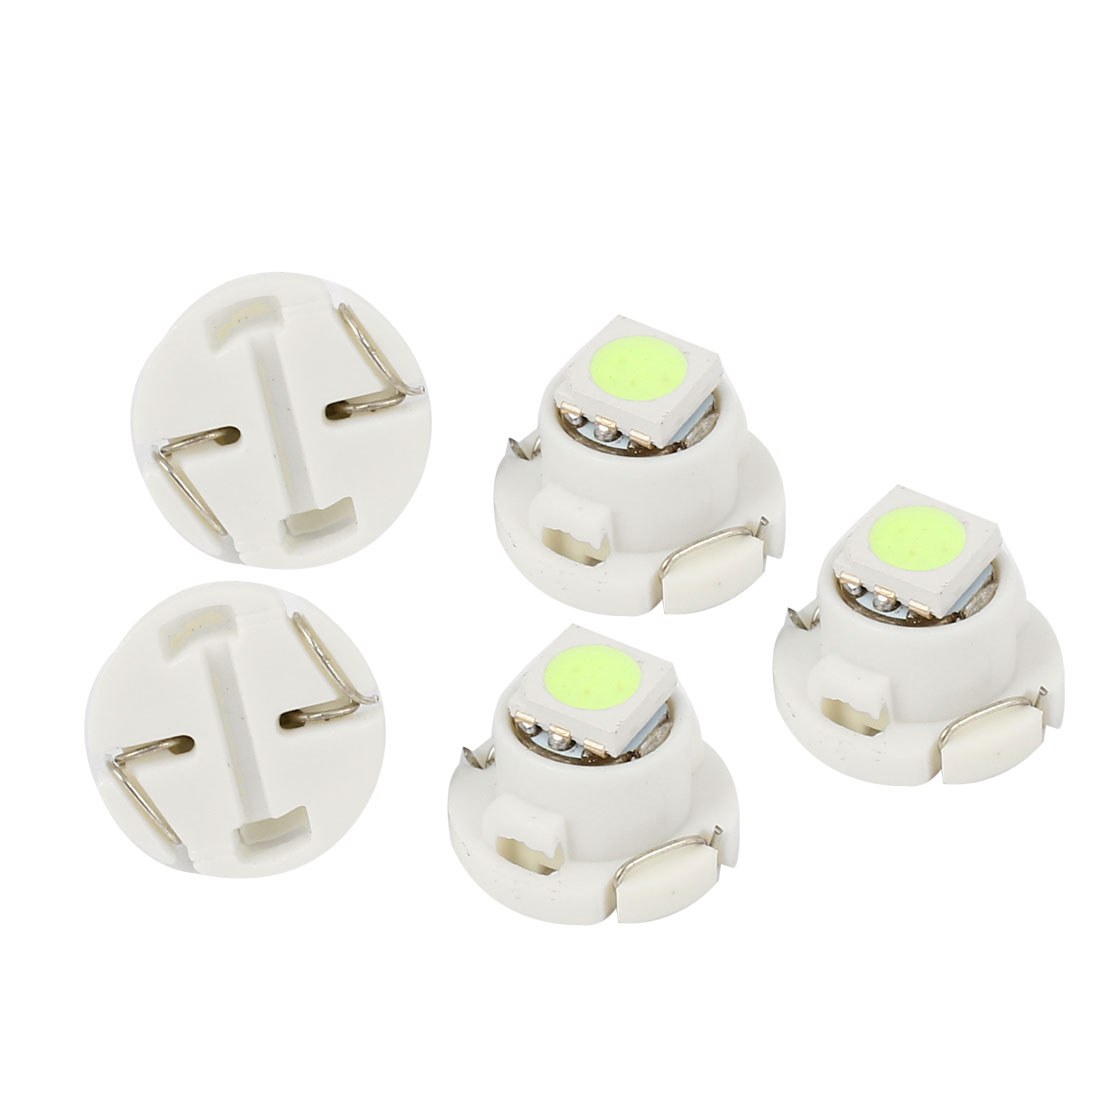 5 Pcs 5050 SMD T4.7 Wedge LED Instrument Light Map Lamp Ice Blue 12V Internal